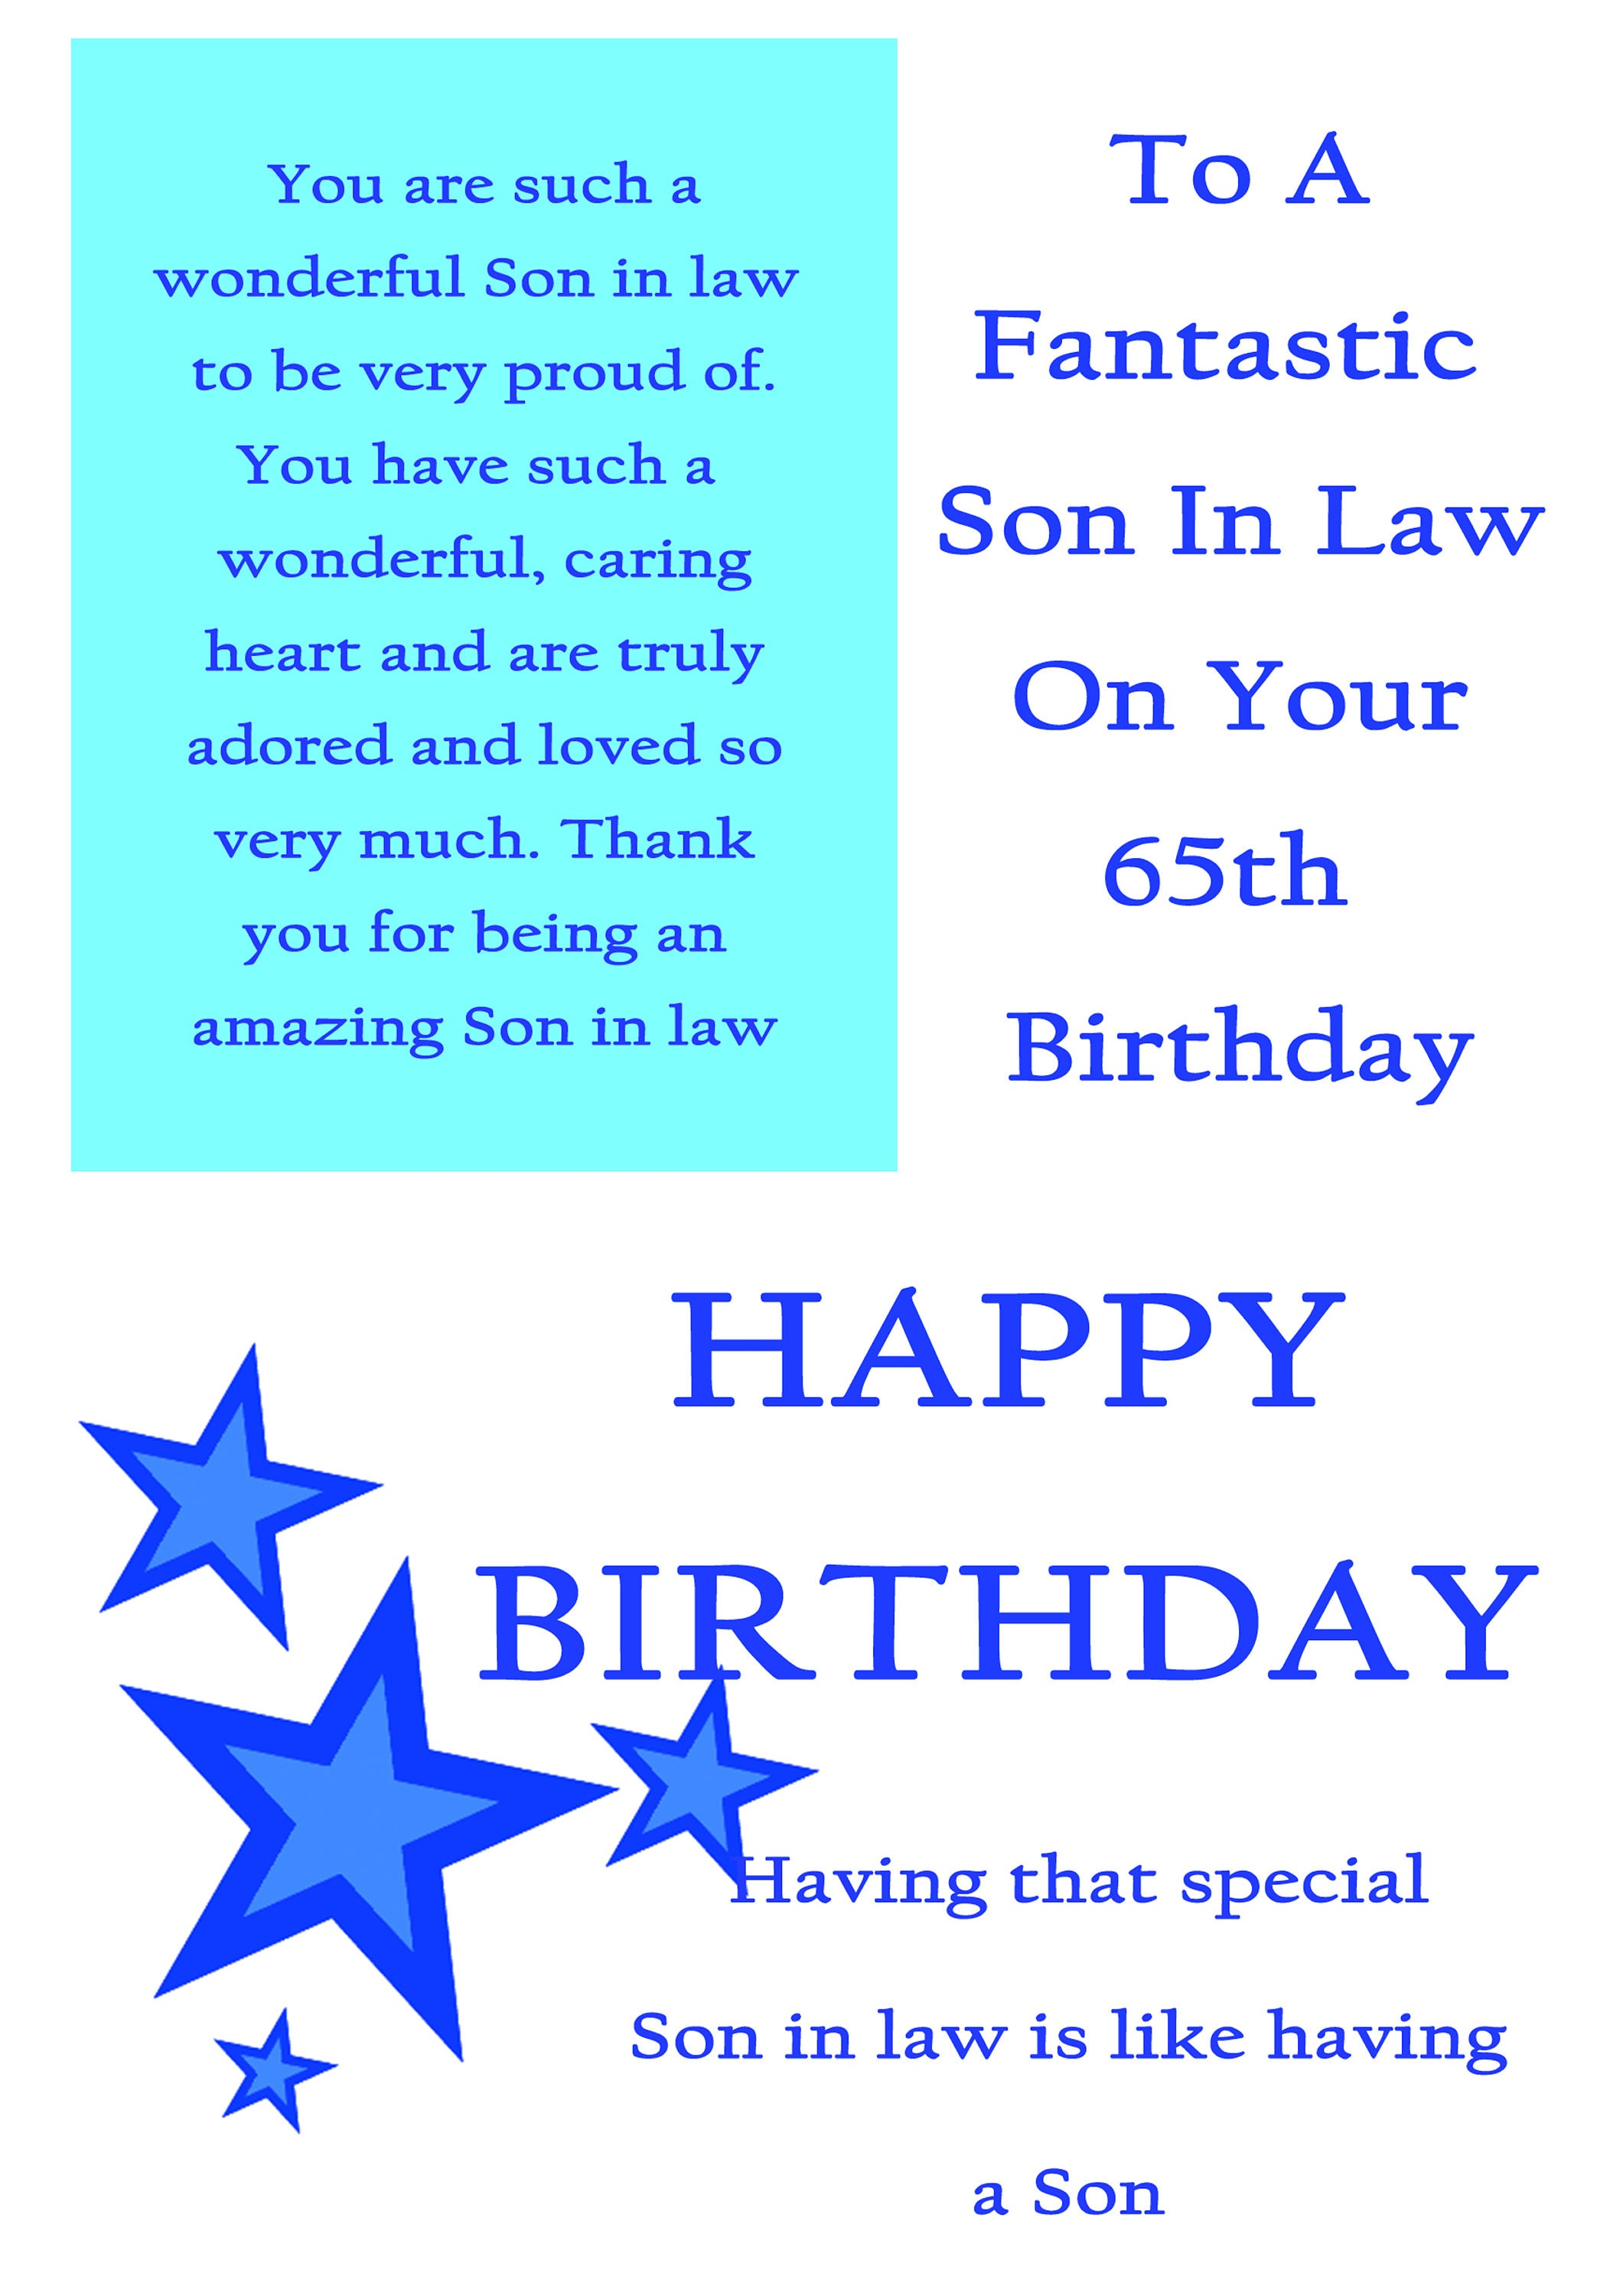 Son In Law 65 Birthday Card With Removable Laminate